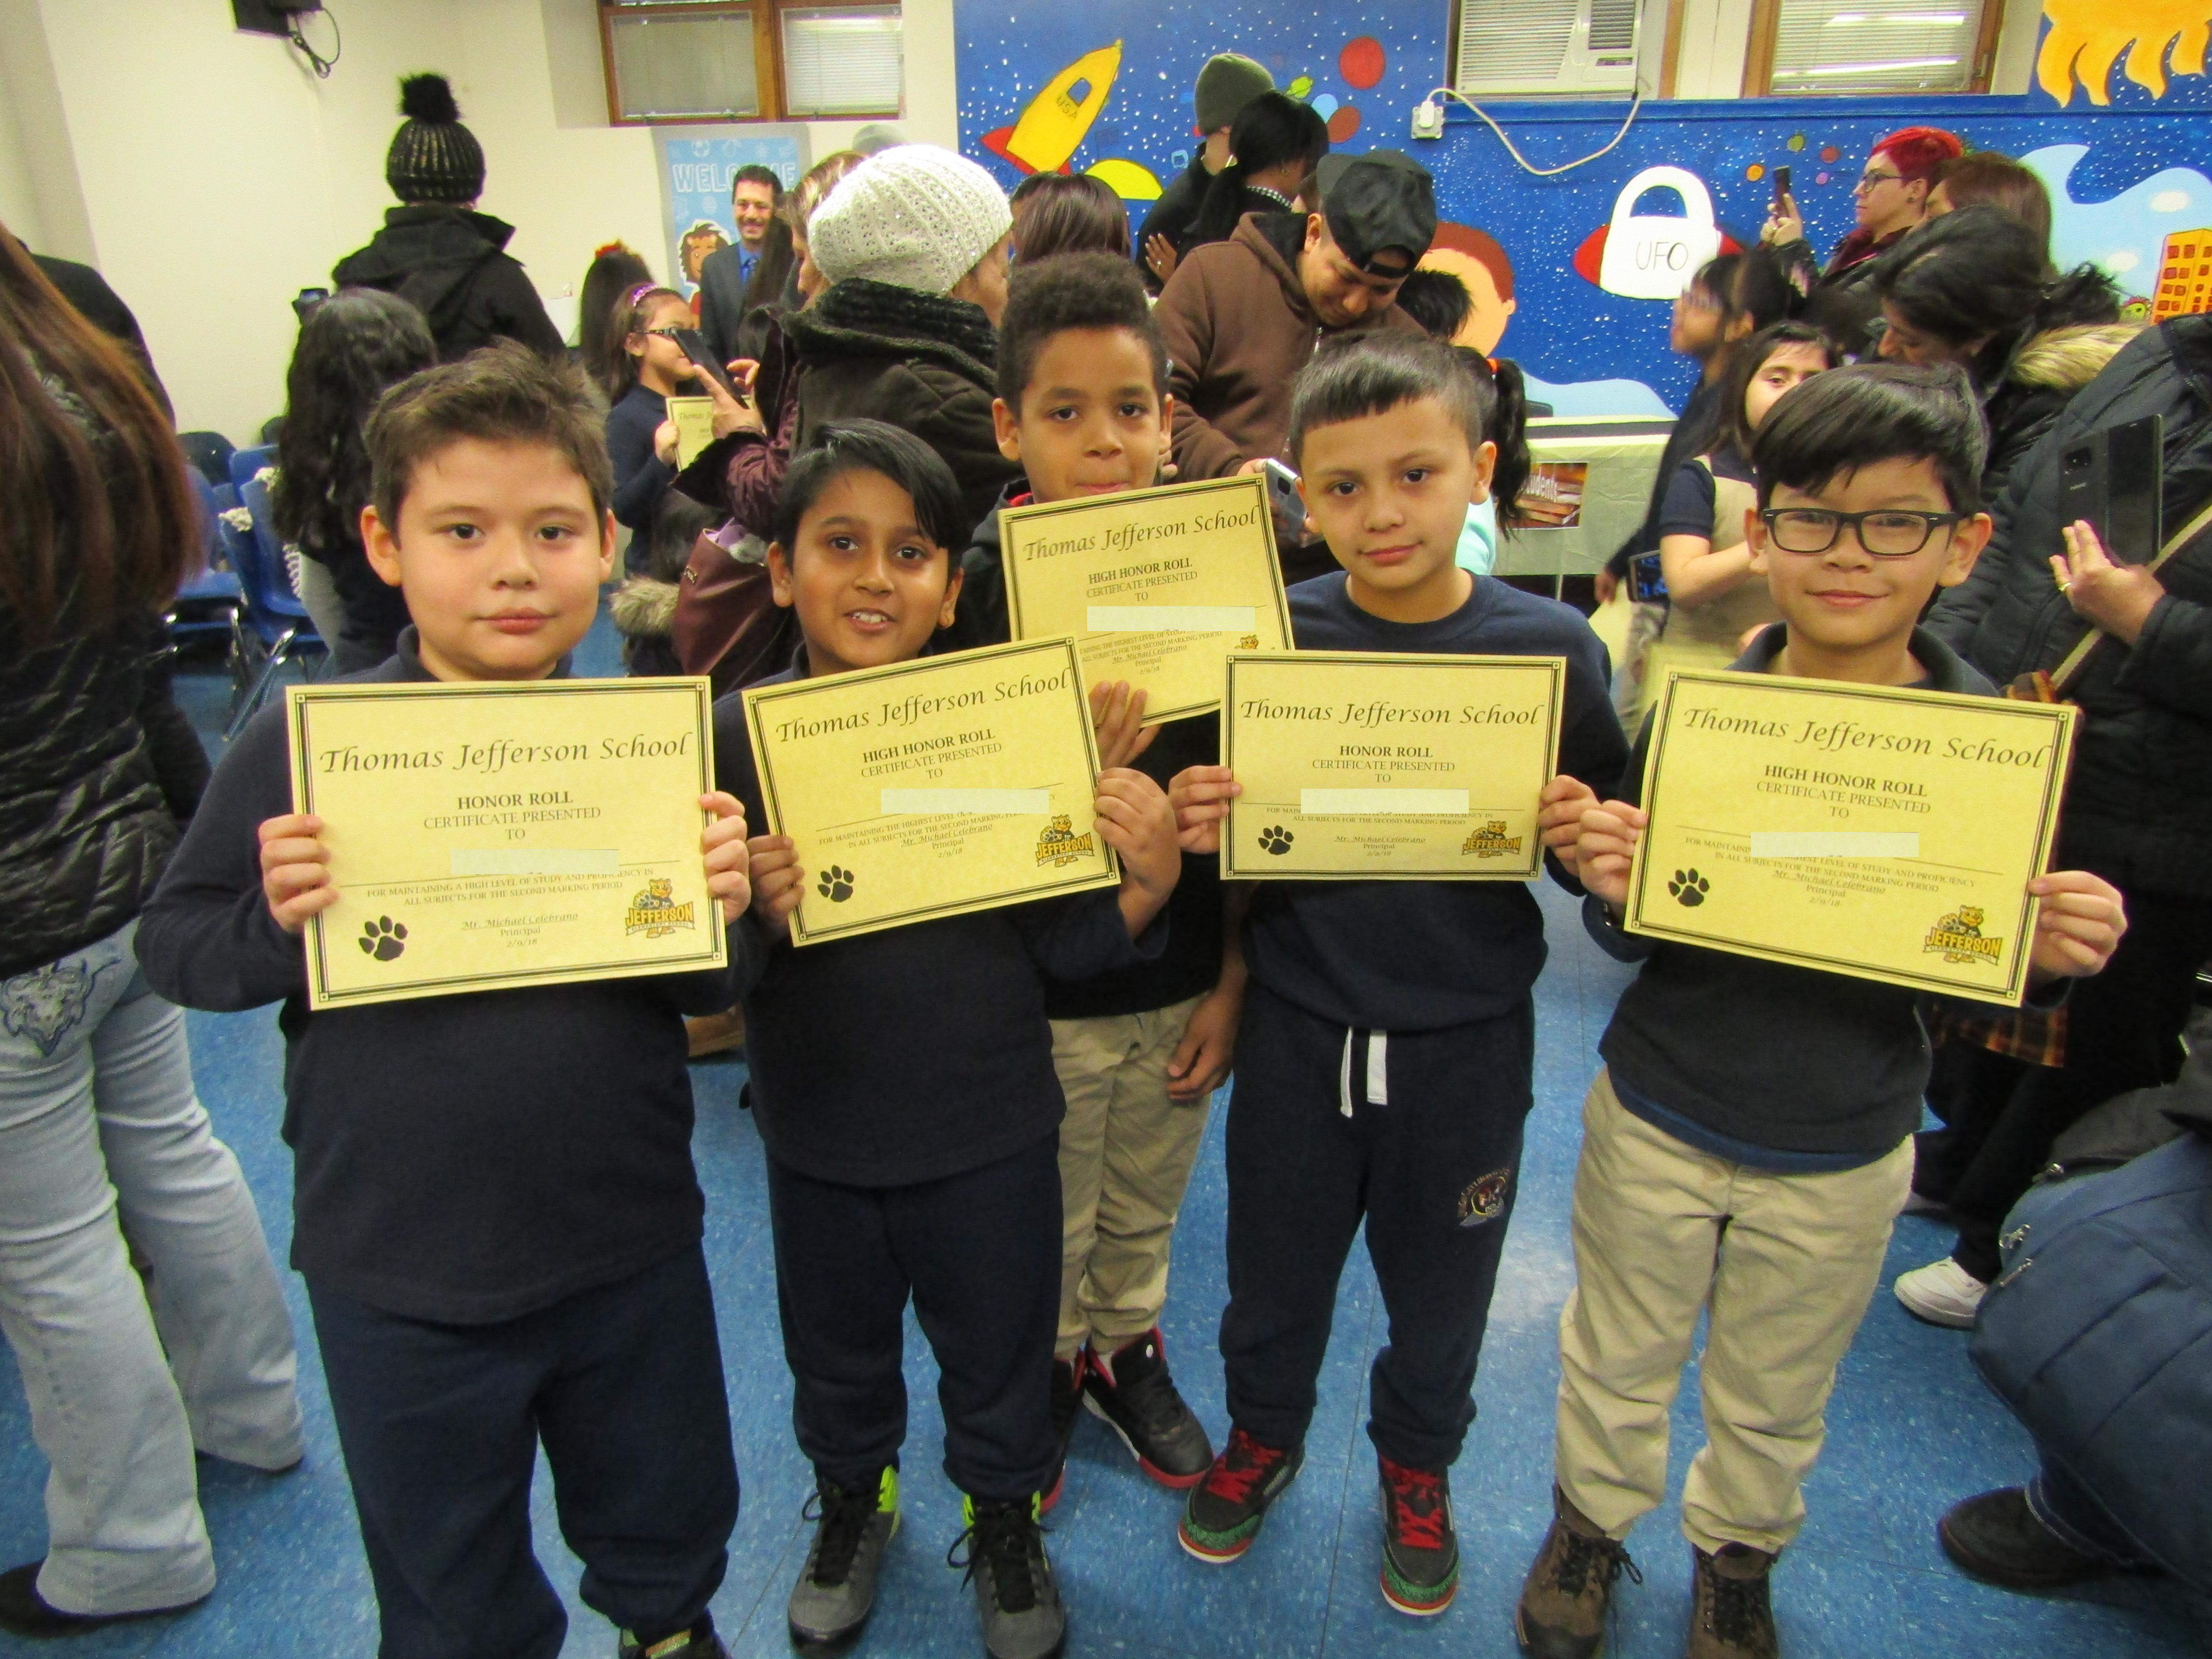 boys standing proudly showing off their certificates of honor